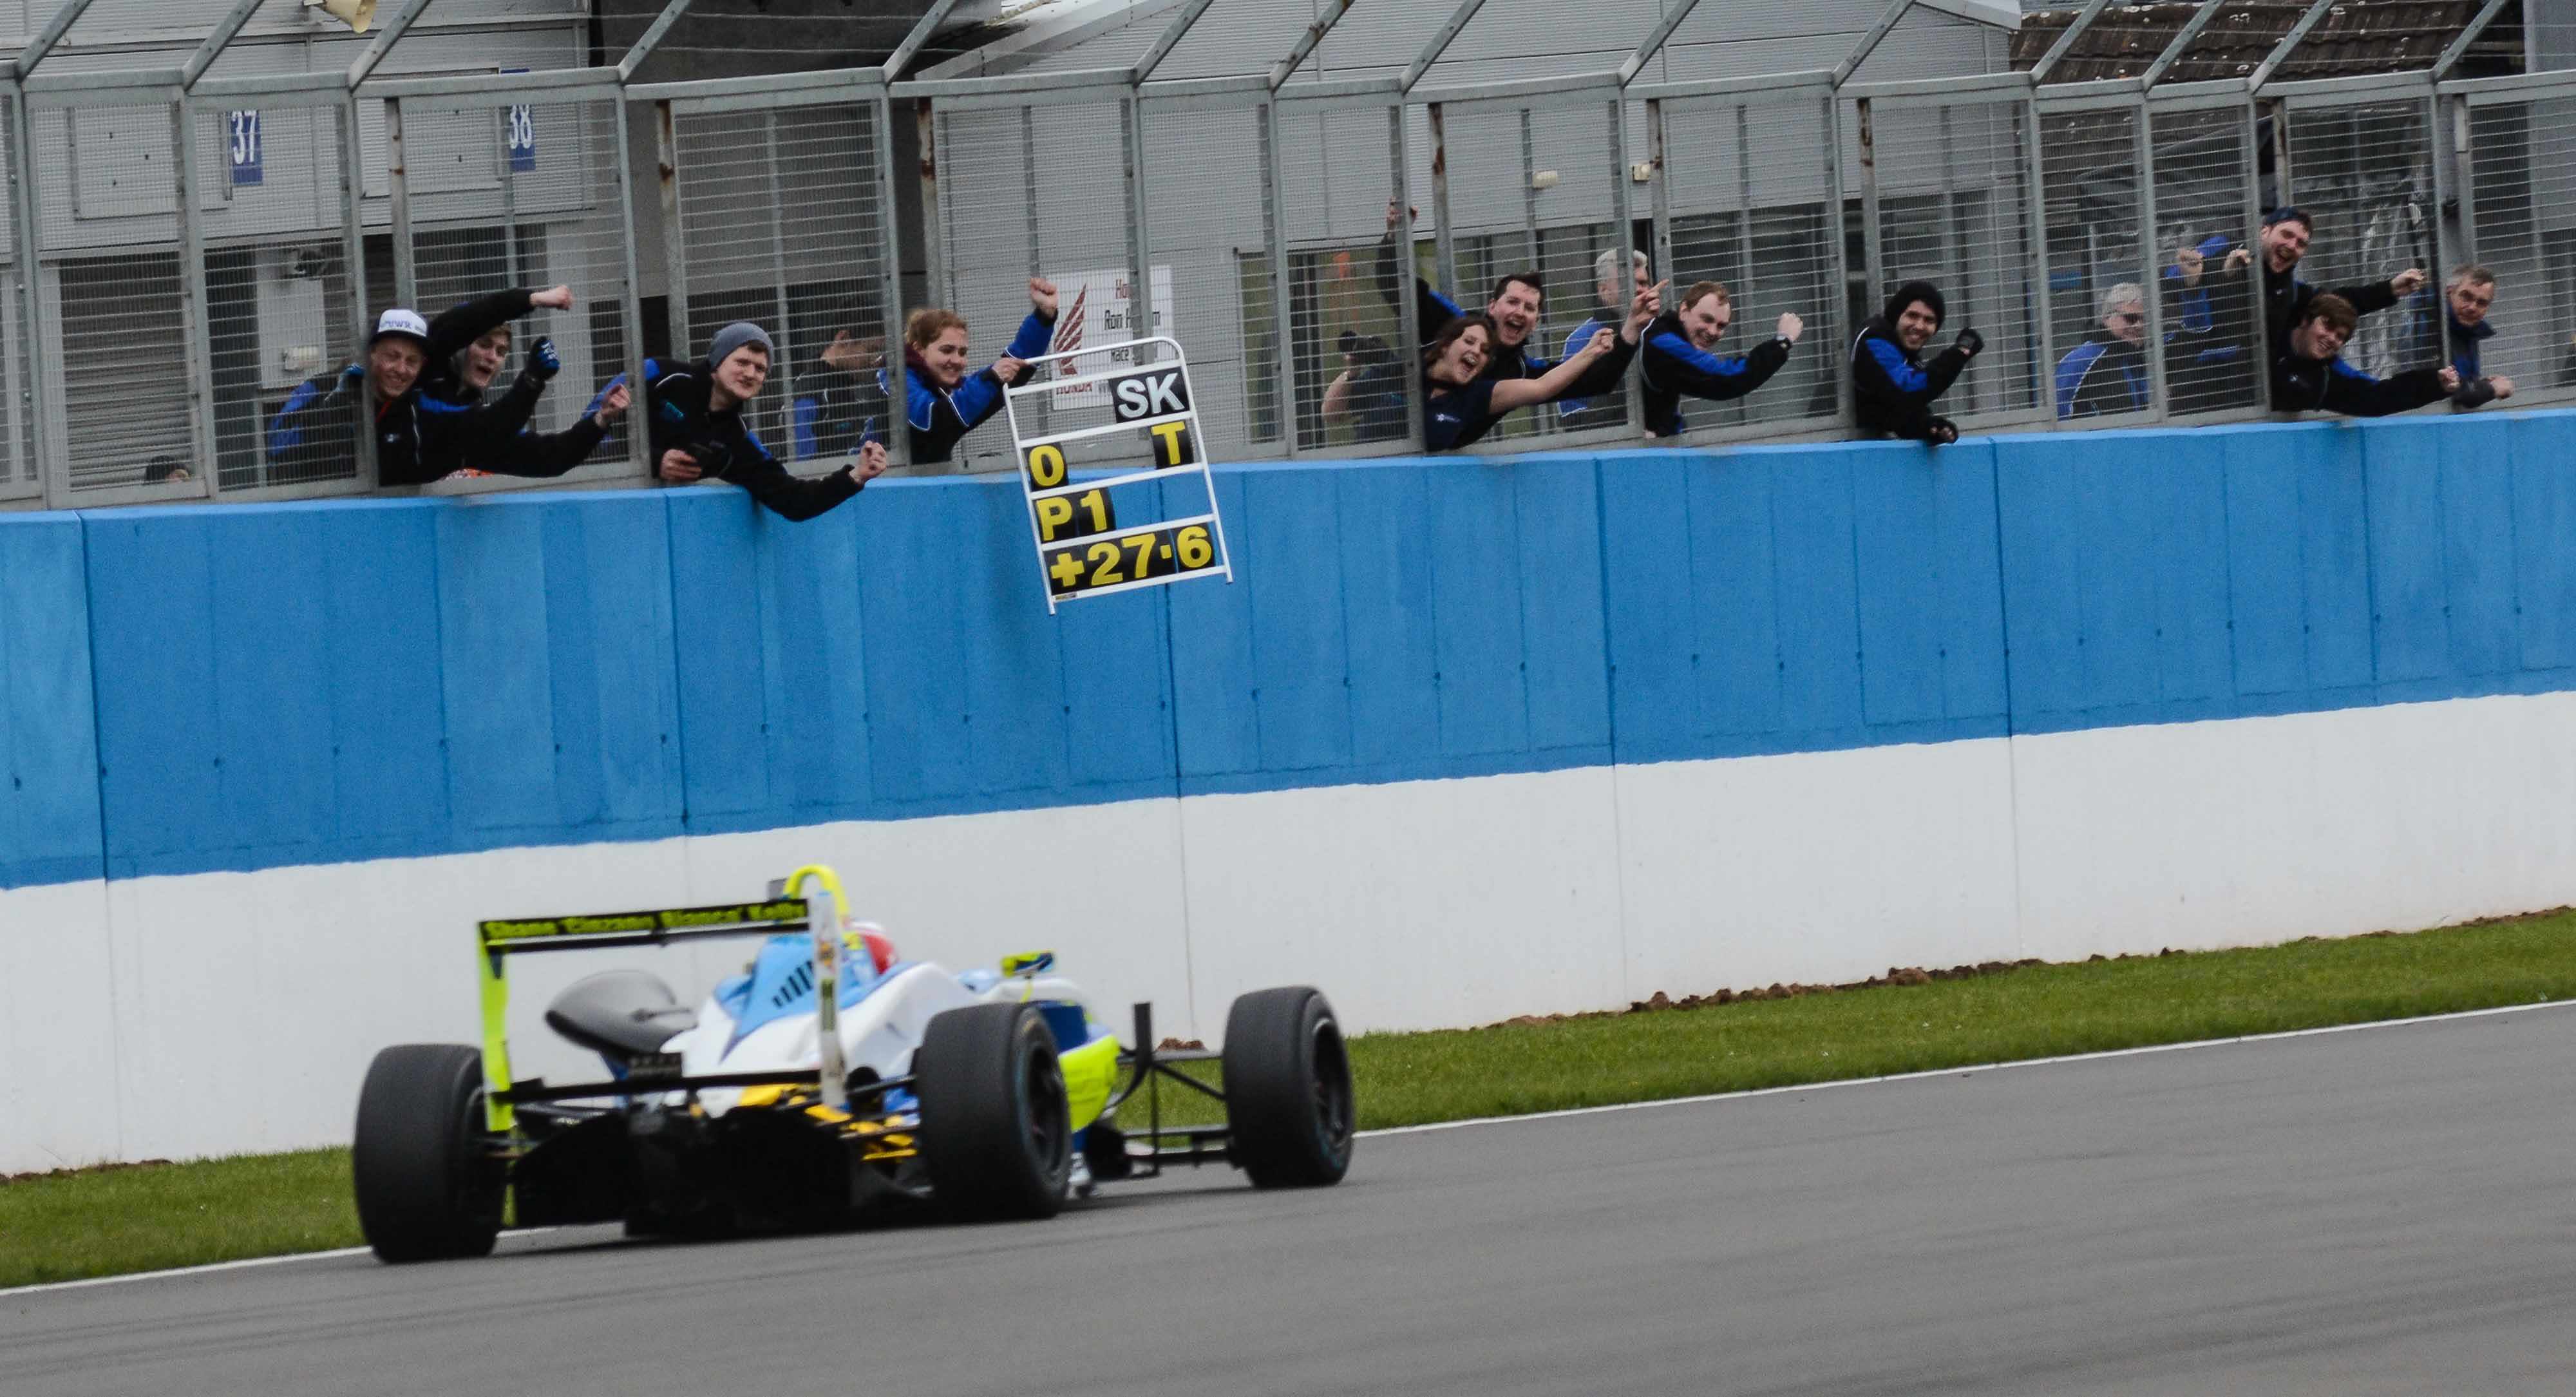 UWR students cheer the F3 car as it comes pass the pit wall